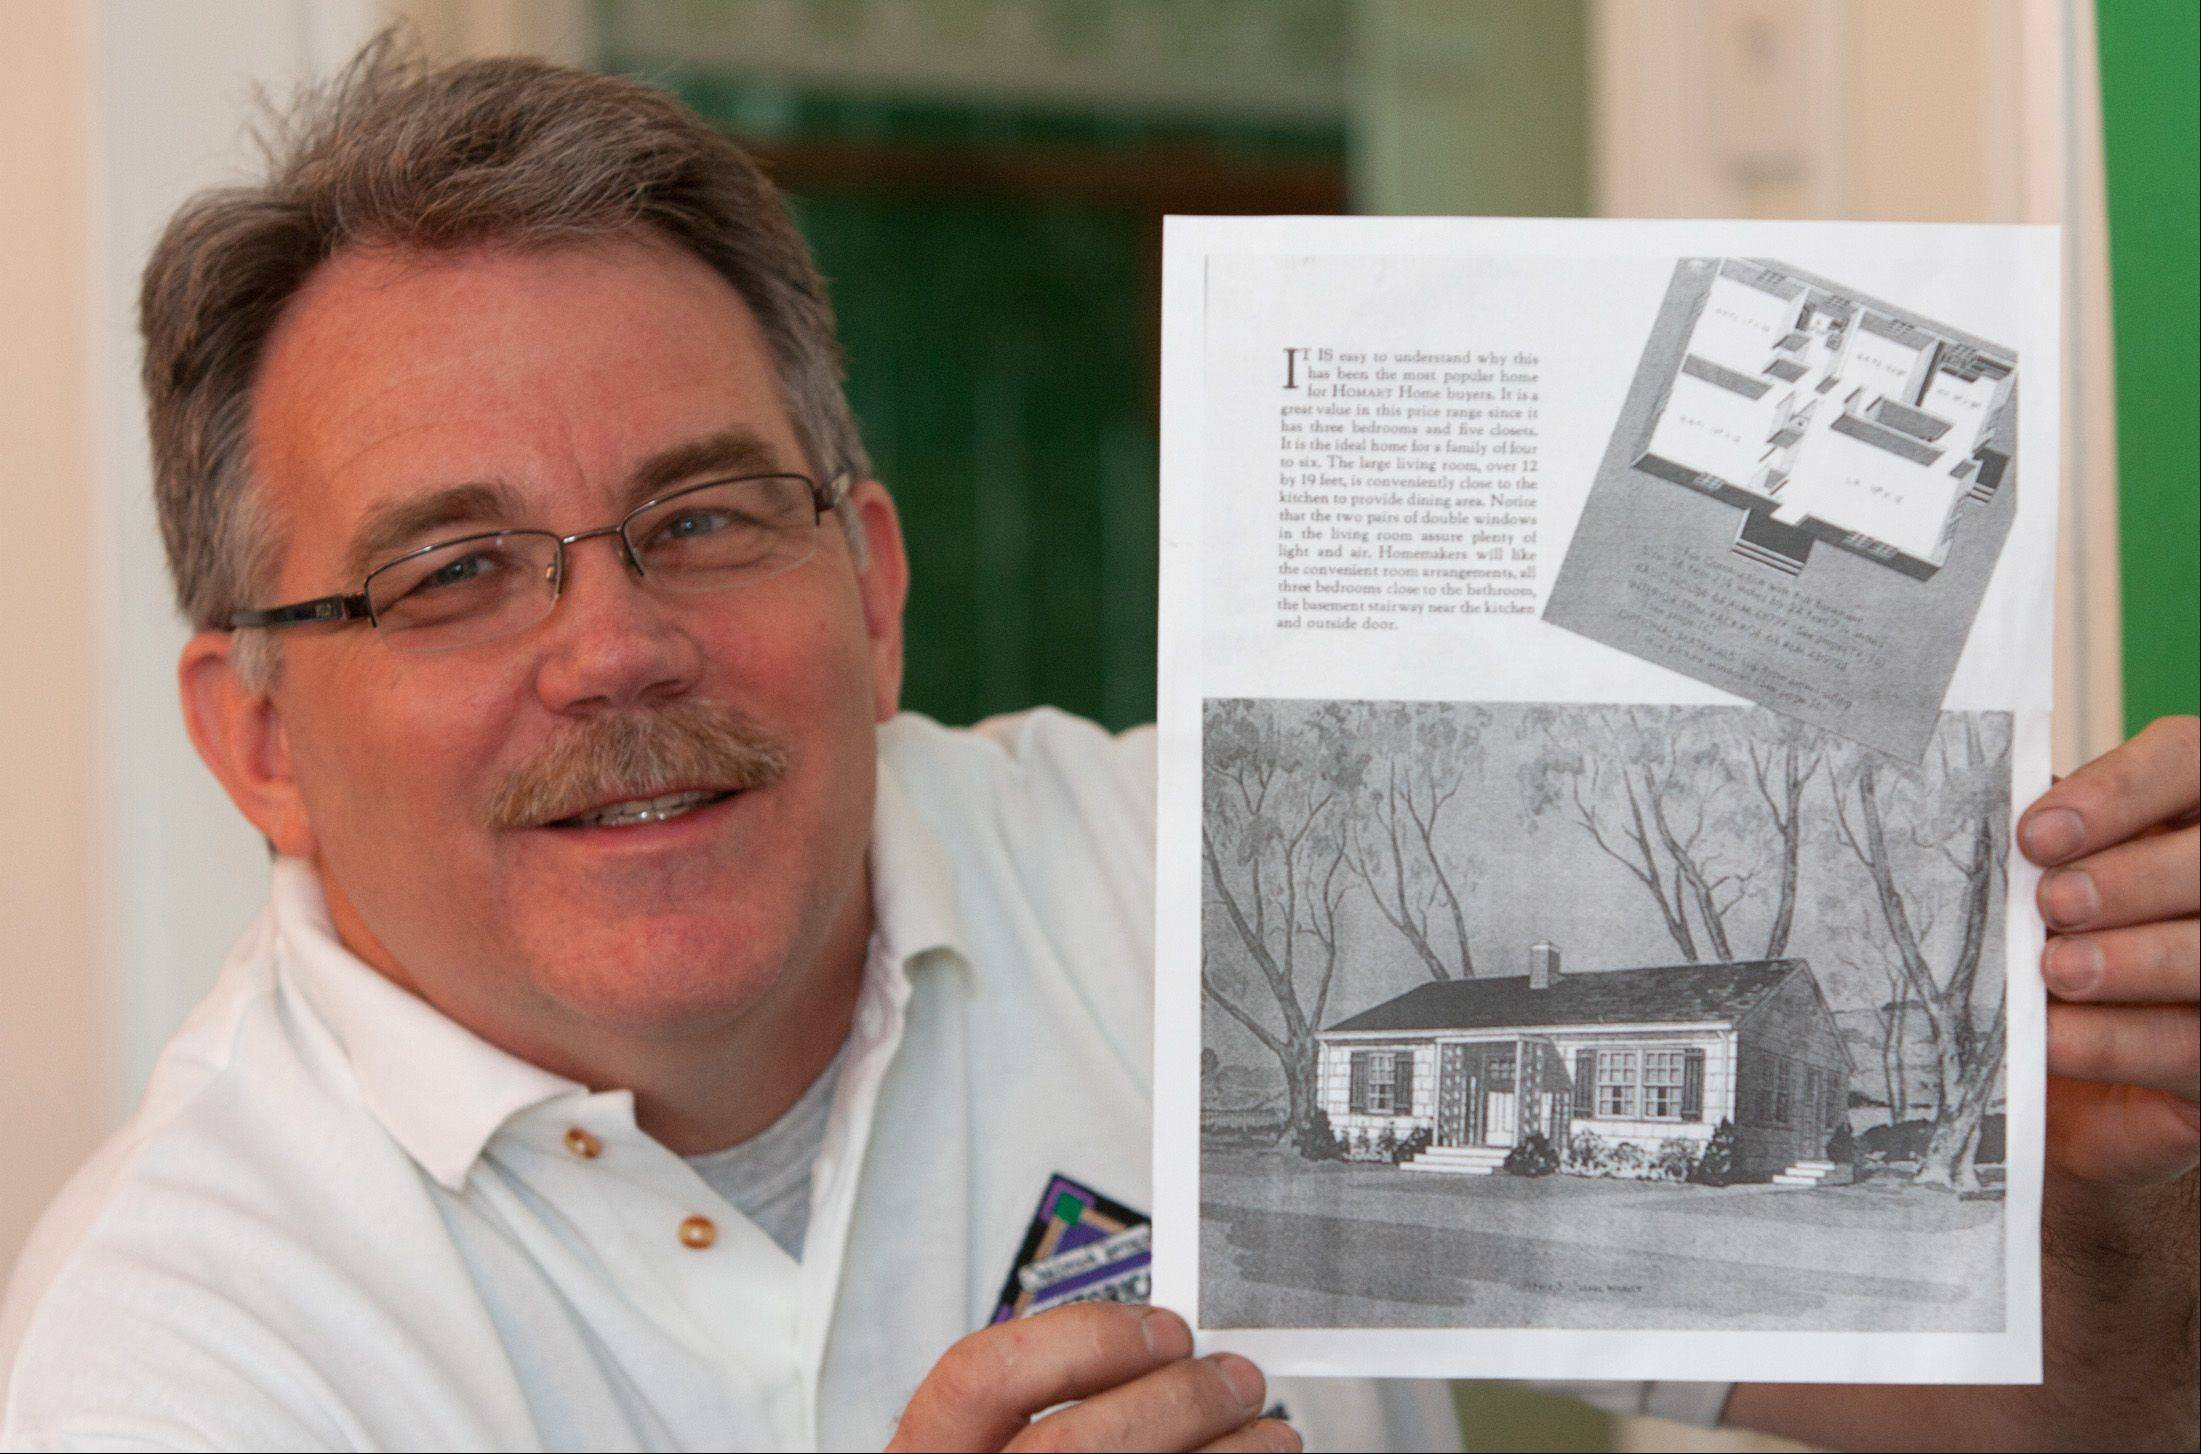 Oakbrook Terrace Historical Society board member Bob Shanahan shows the plan for how the Sears Roebuck Homart home originally looked when it was built in 1950-51 by the family of former city clerk Lorraine Fik.